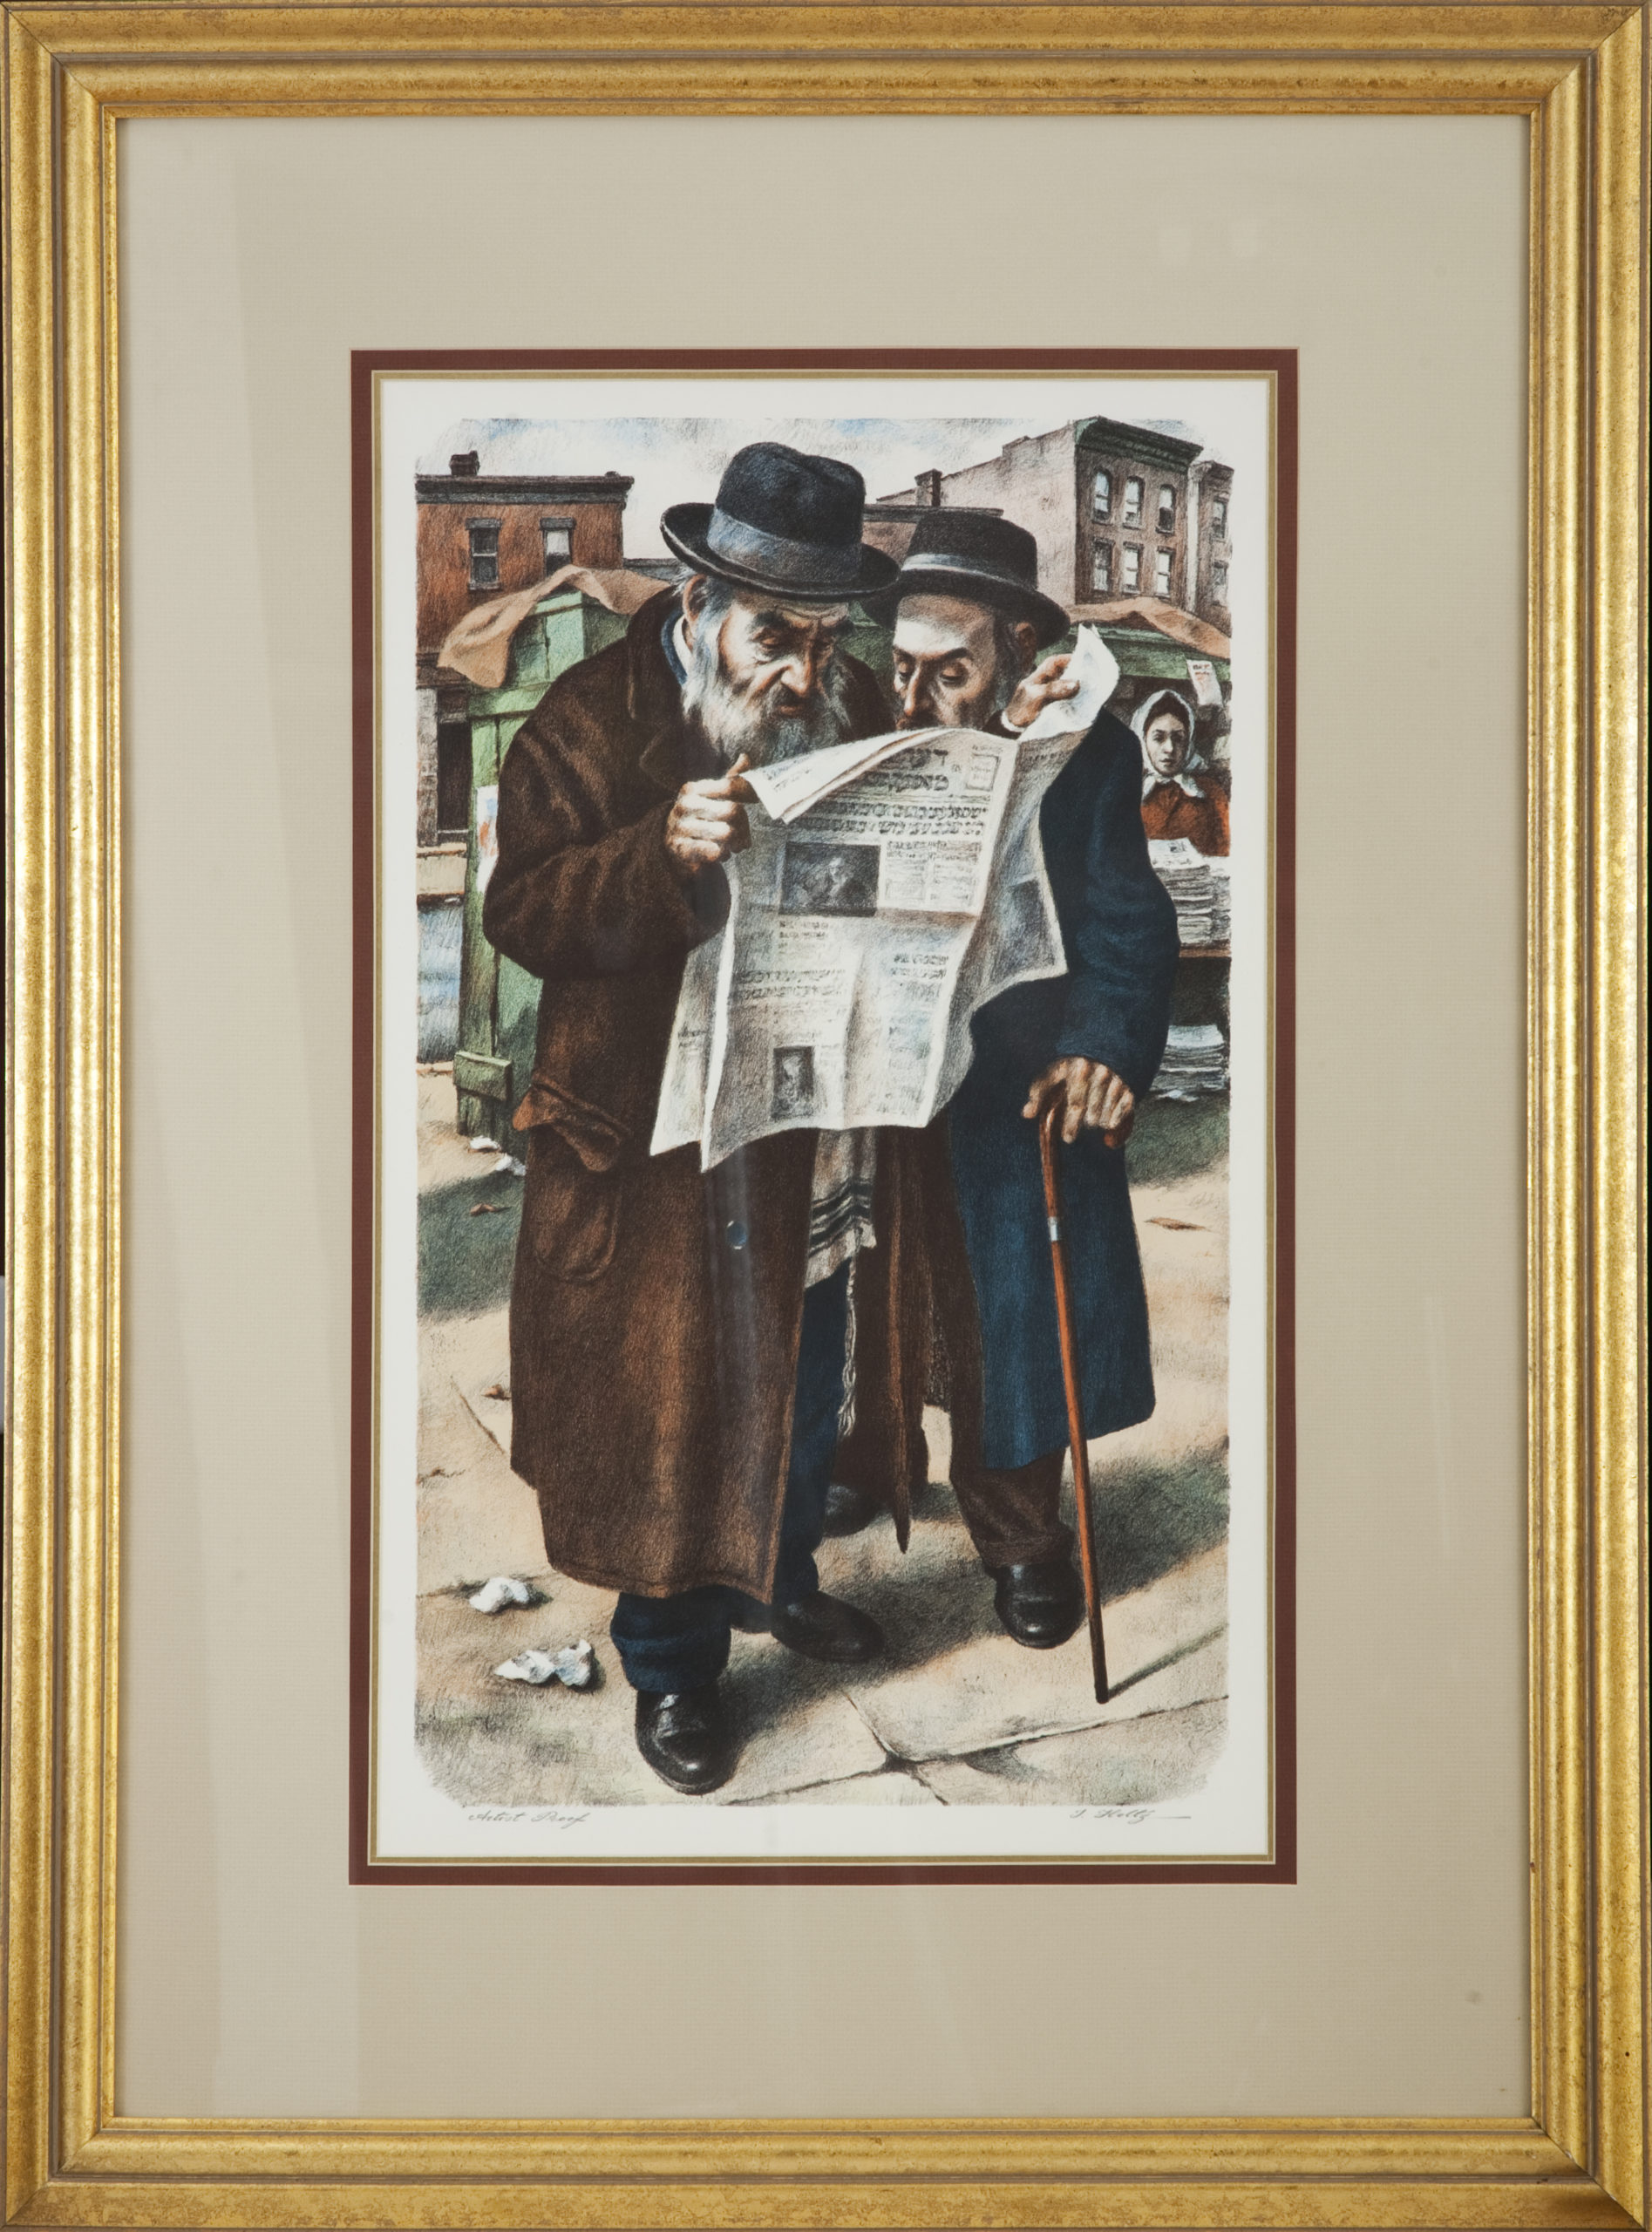 L19F Reading the Newspaper - Color - Lithograph - 20 x 30 - Framed